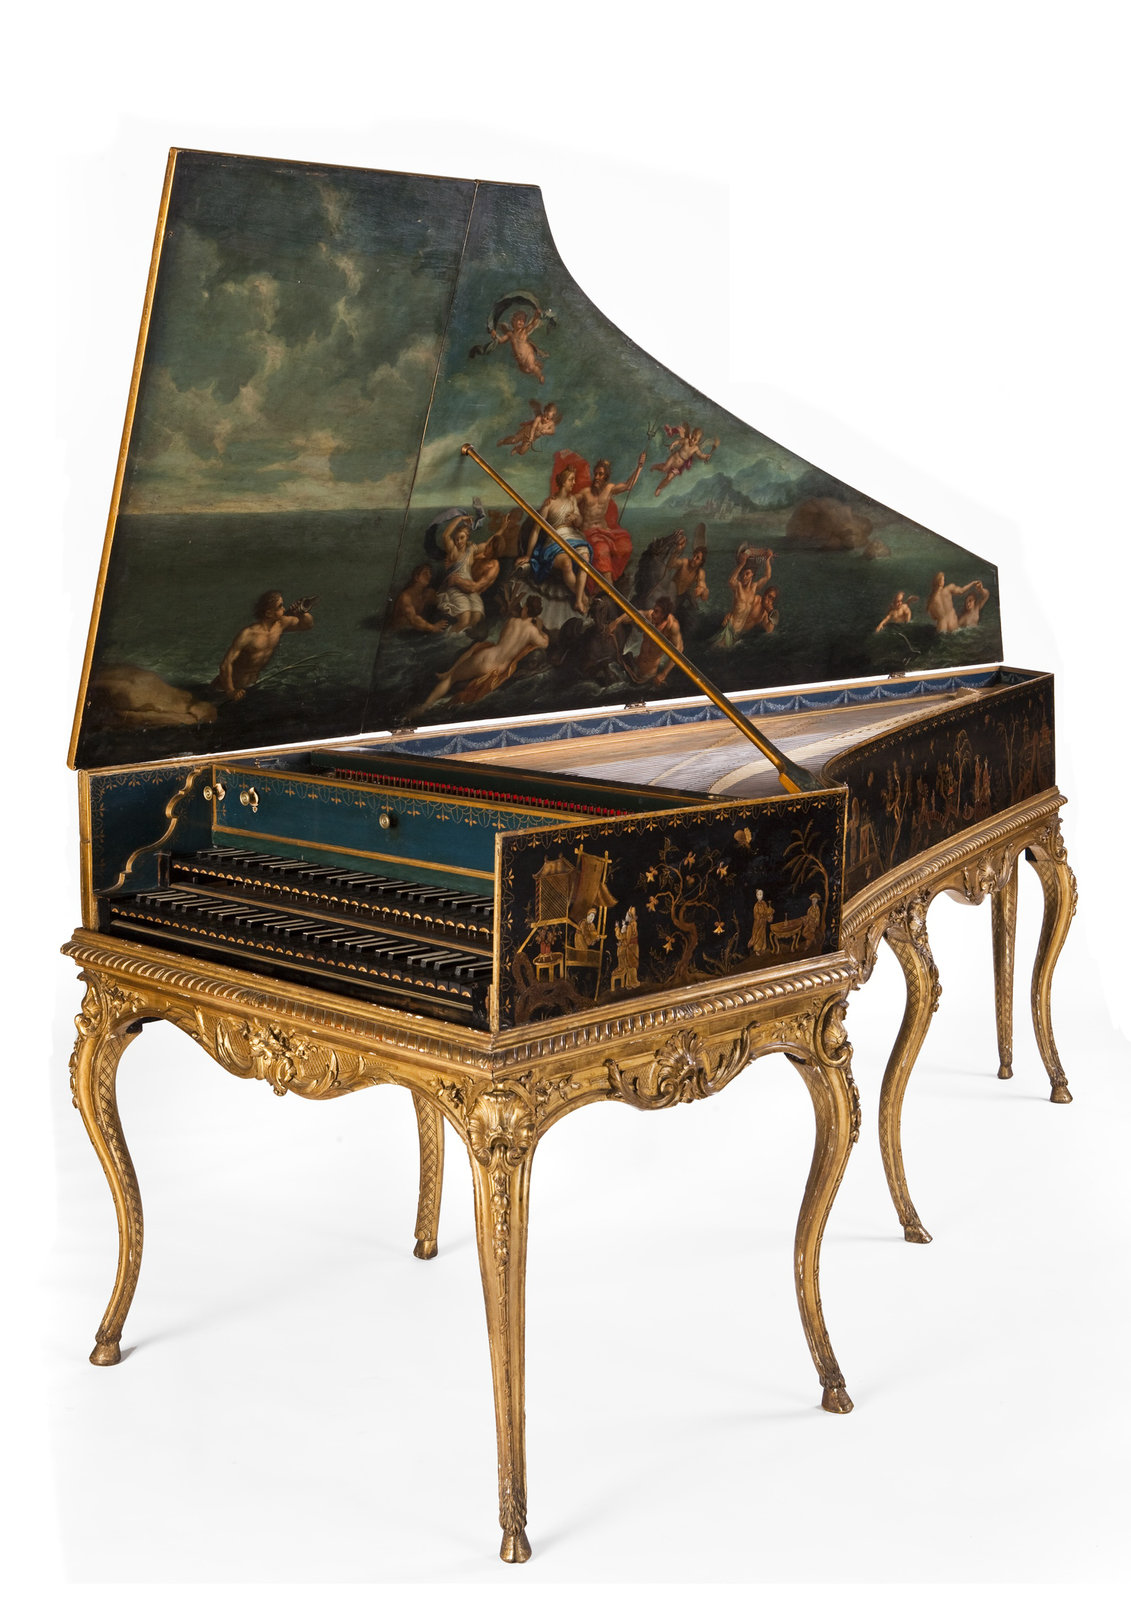 Harpsichord, 1755, Luigi Baillon, [A rare example of a French harpsichord made outside Paris. The case decoration is stunning The outer case is elaborately decorated with chinoiserie scenes, and there is a seascape in the lid depicting Venus and Neptune.], University of Edinburgh, CC BY-NC-SA